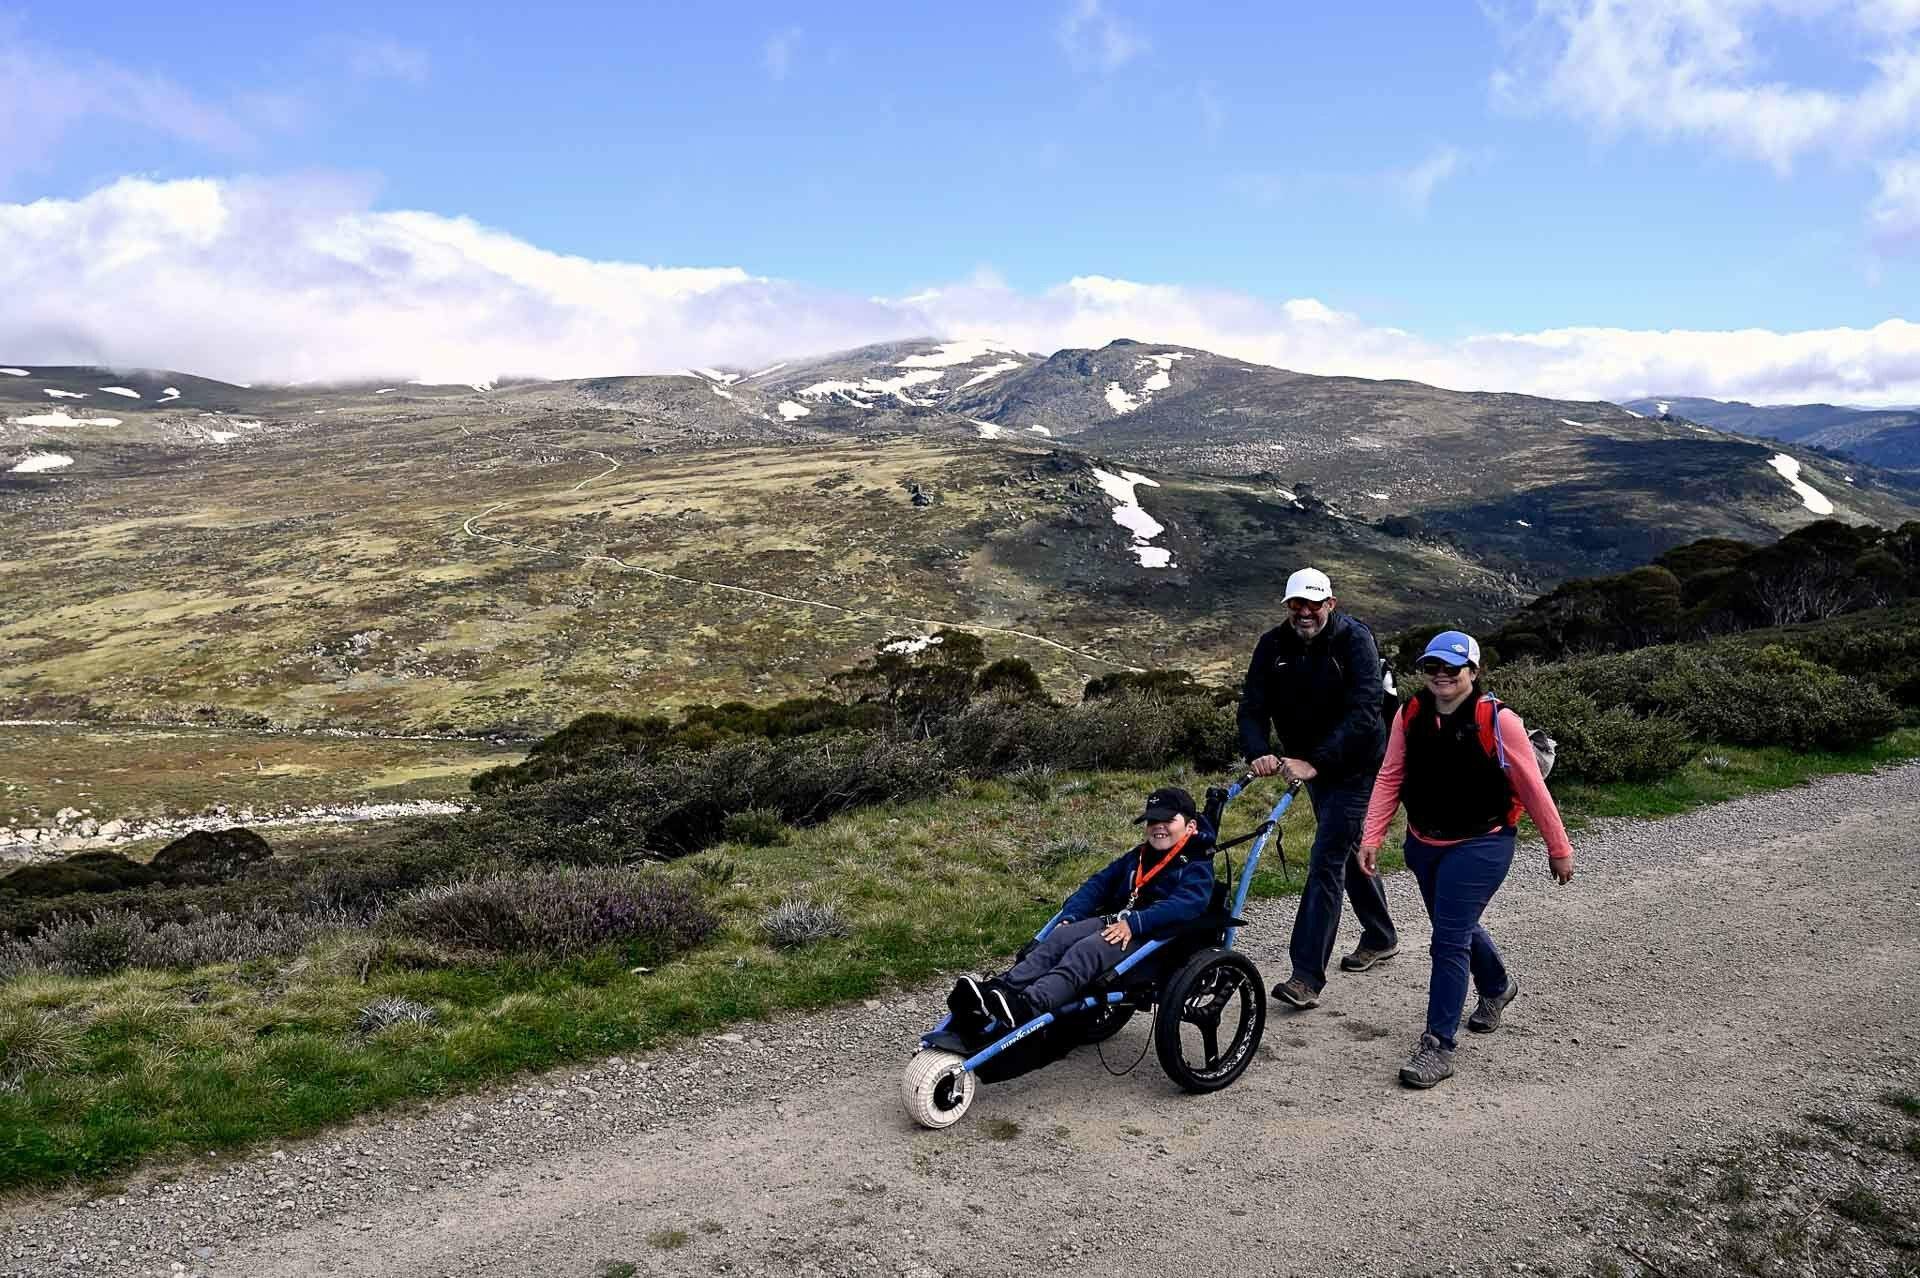 Josh on the trail with his mum and dad, 4 Ideas for Accessible Adventures in NSW, joe kennedy, kosciuszko national park, summit track